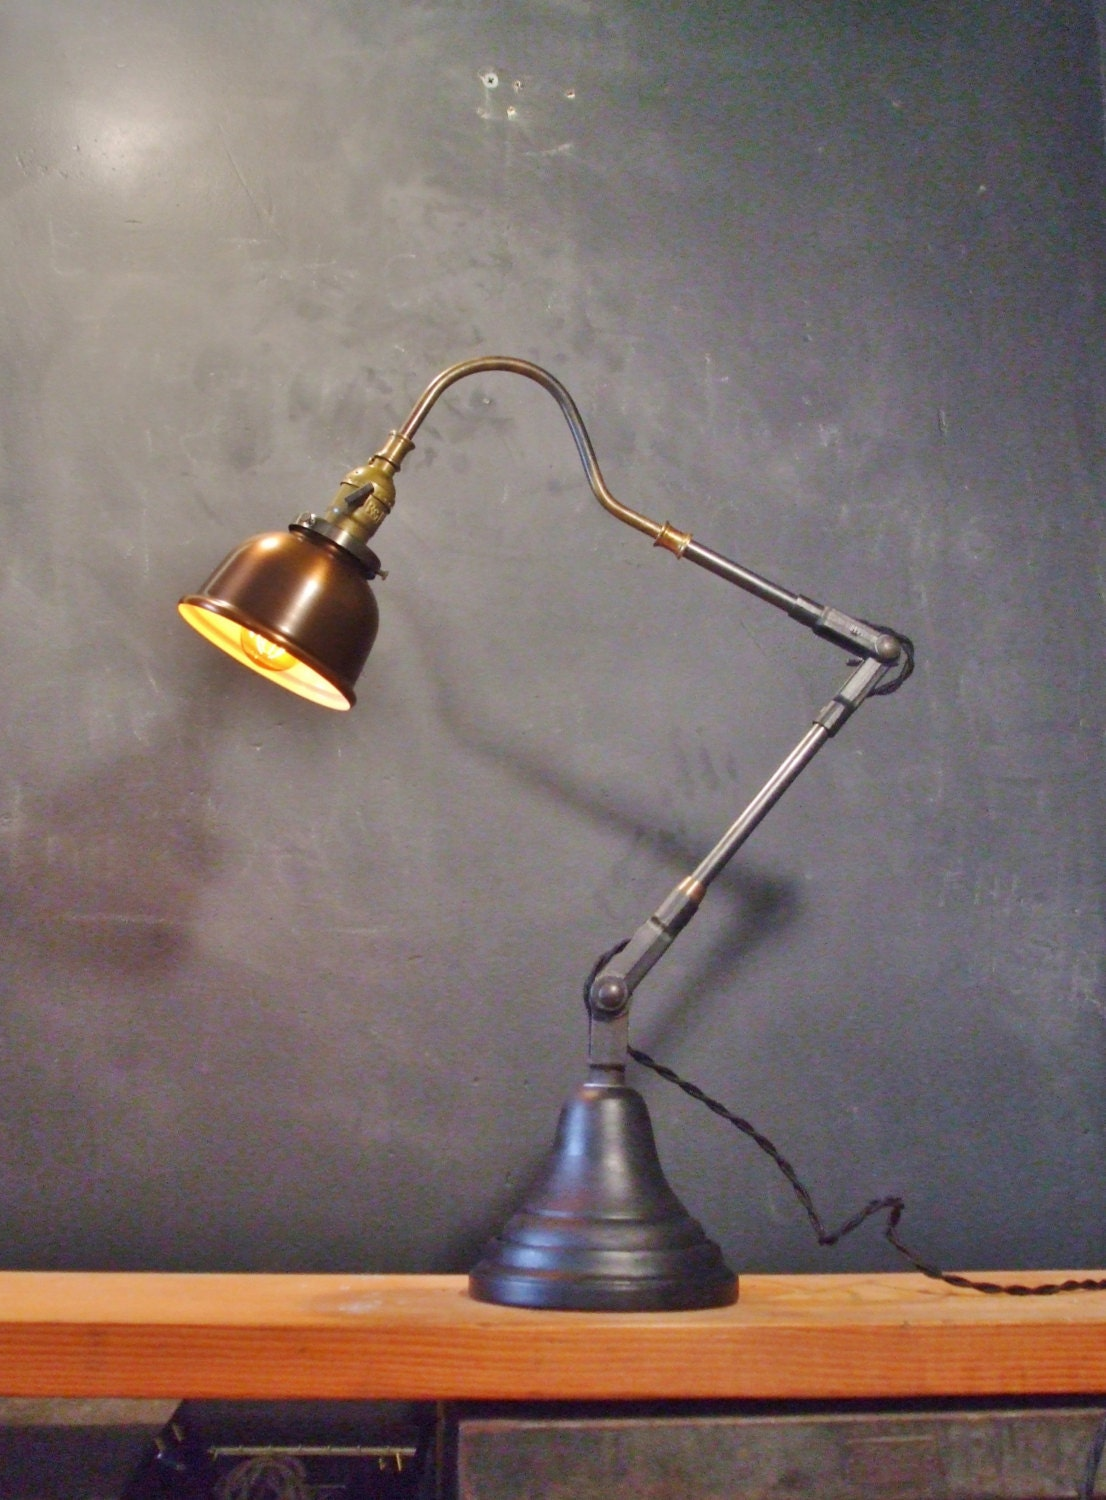 Articulating Lamp Parts Vintage Industrial Desk Lamp w/ Copper Shade Pharmacy Lamp